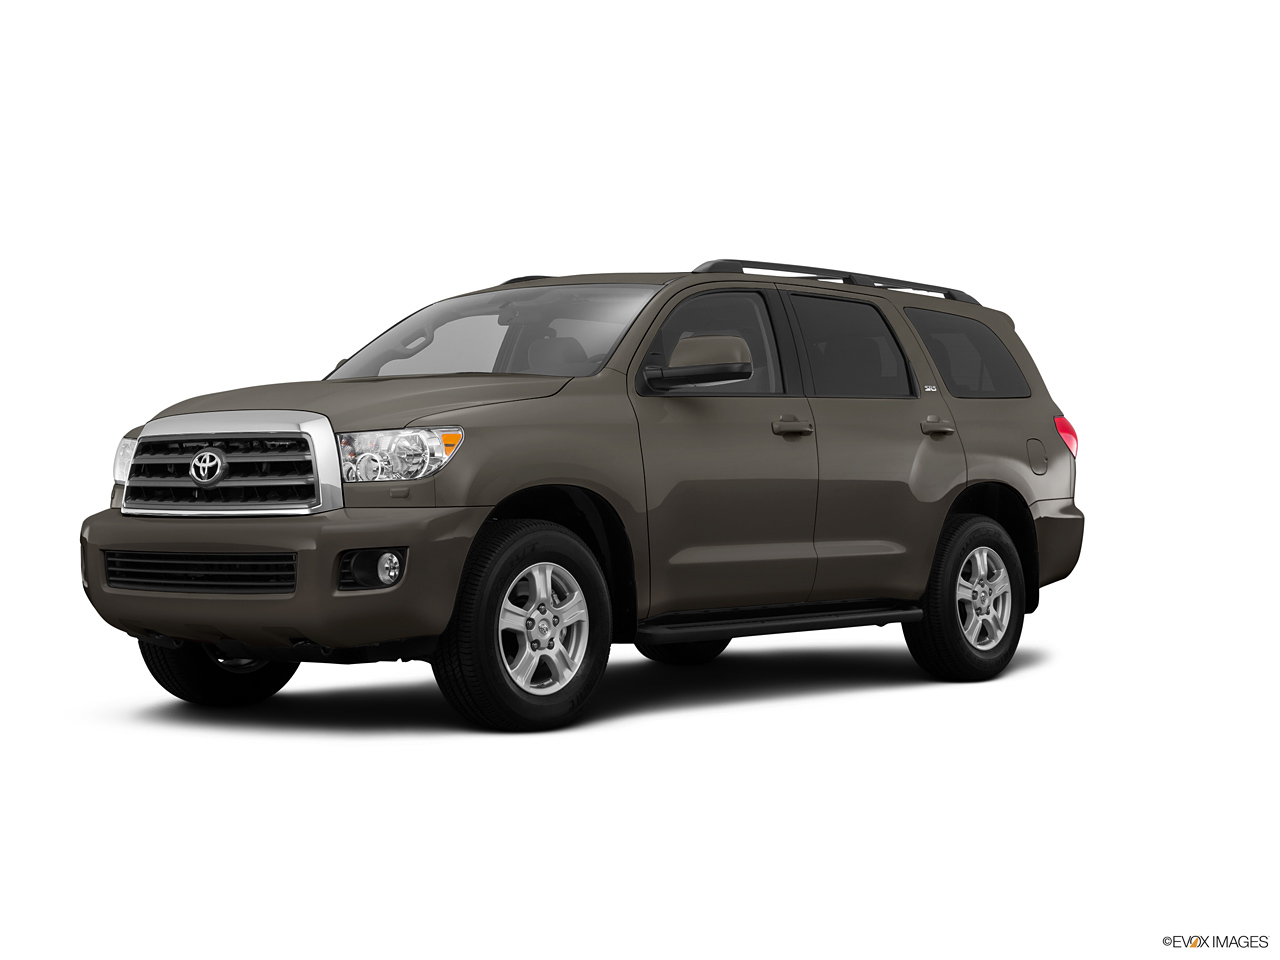 Car Features List For Toyota Sequoia 2017 5 7l Sr5 Moon